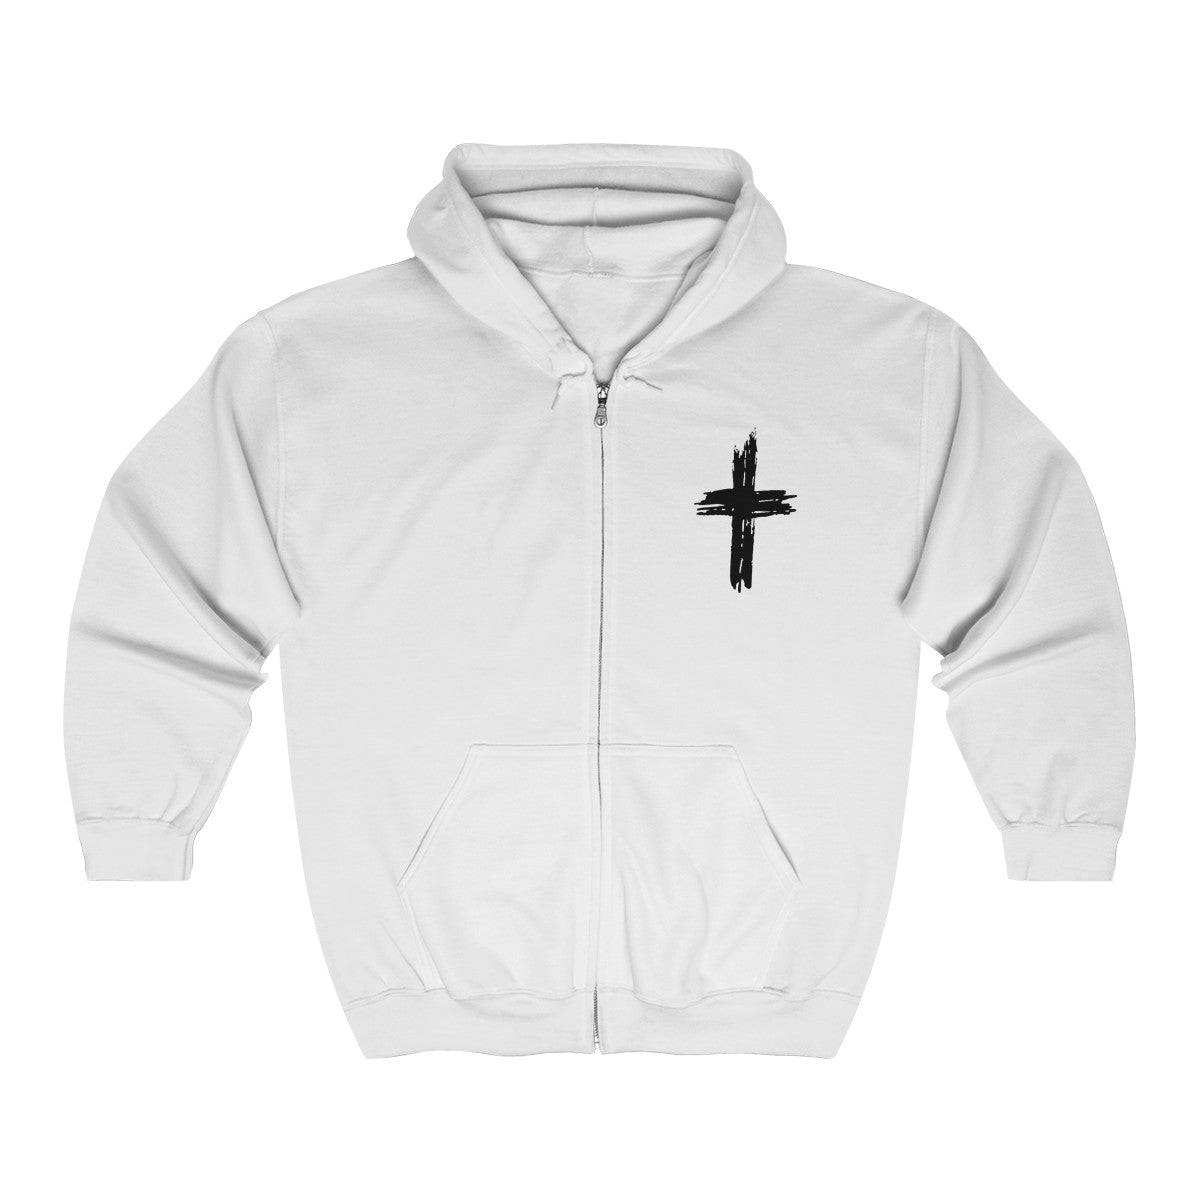 Odyssey Cross My Heart Men's Hoodies